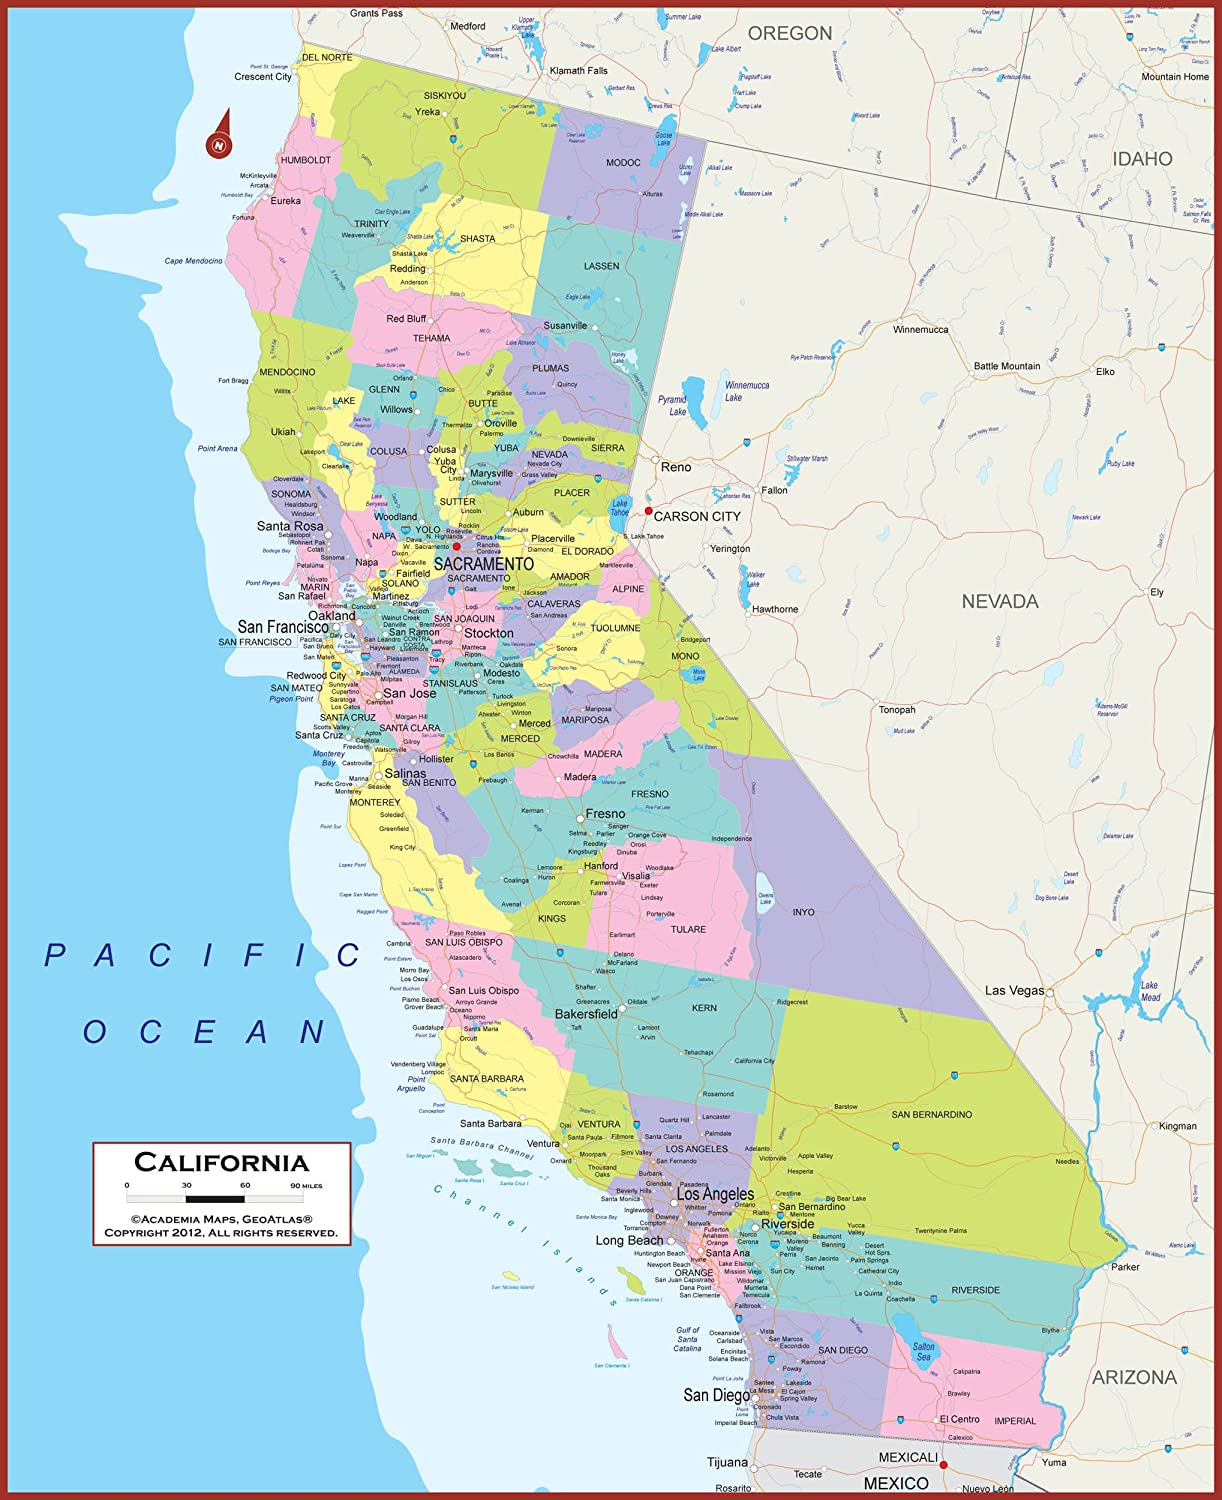 Map Of Arizona Counties And Major Cities.Amazon Com 34 X 42 California State Wall Map Poster With Counties